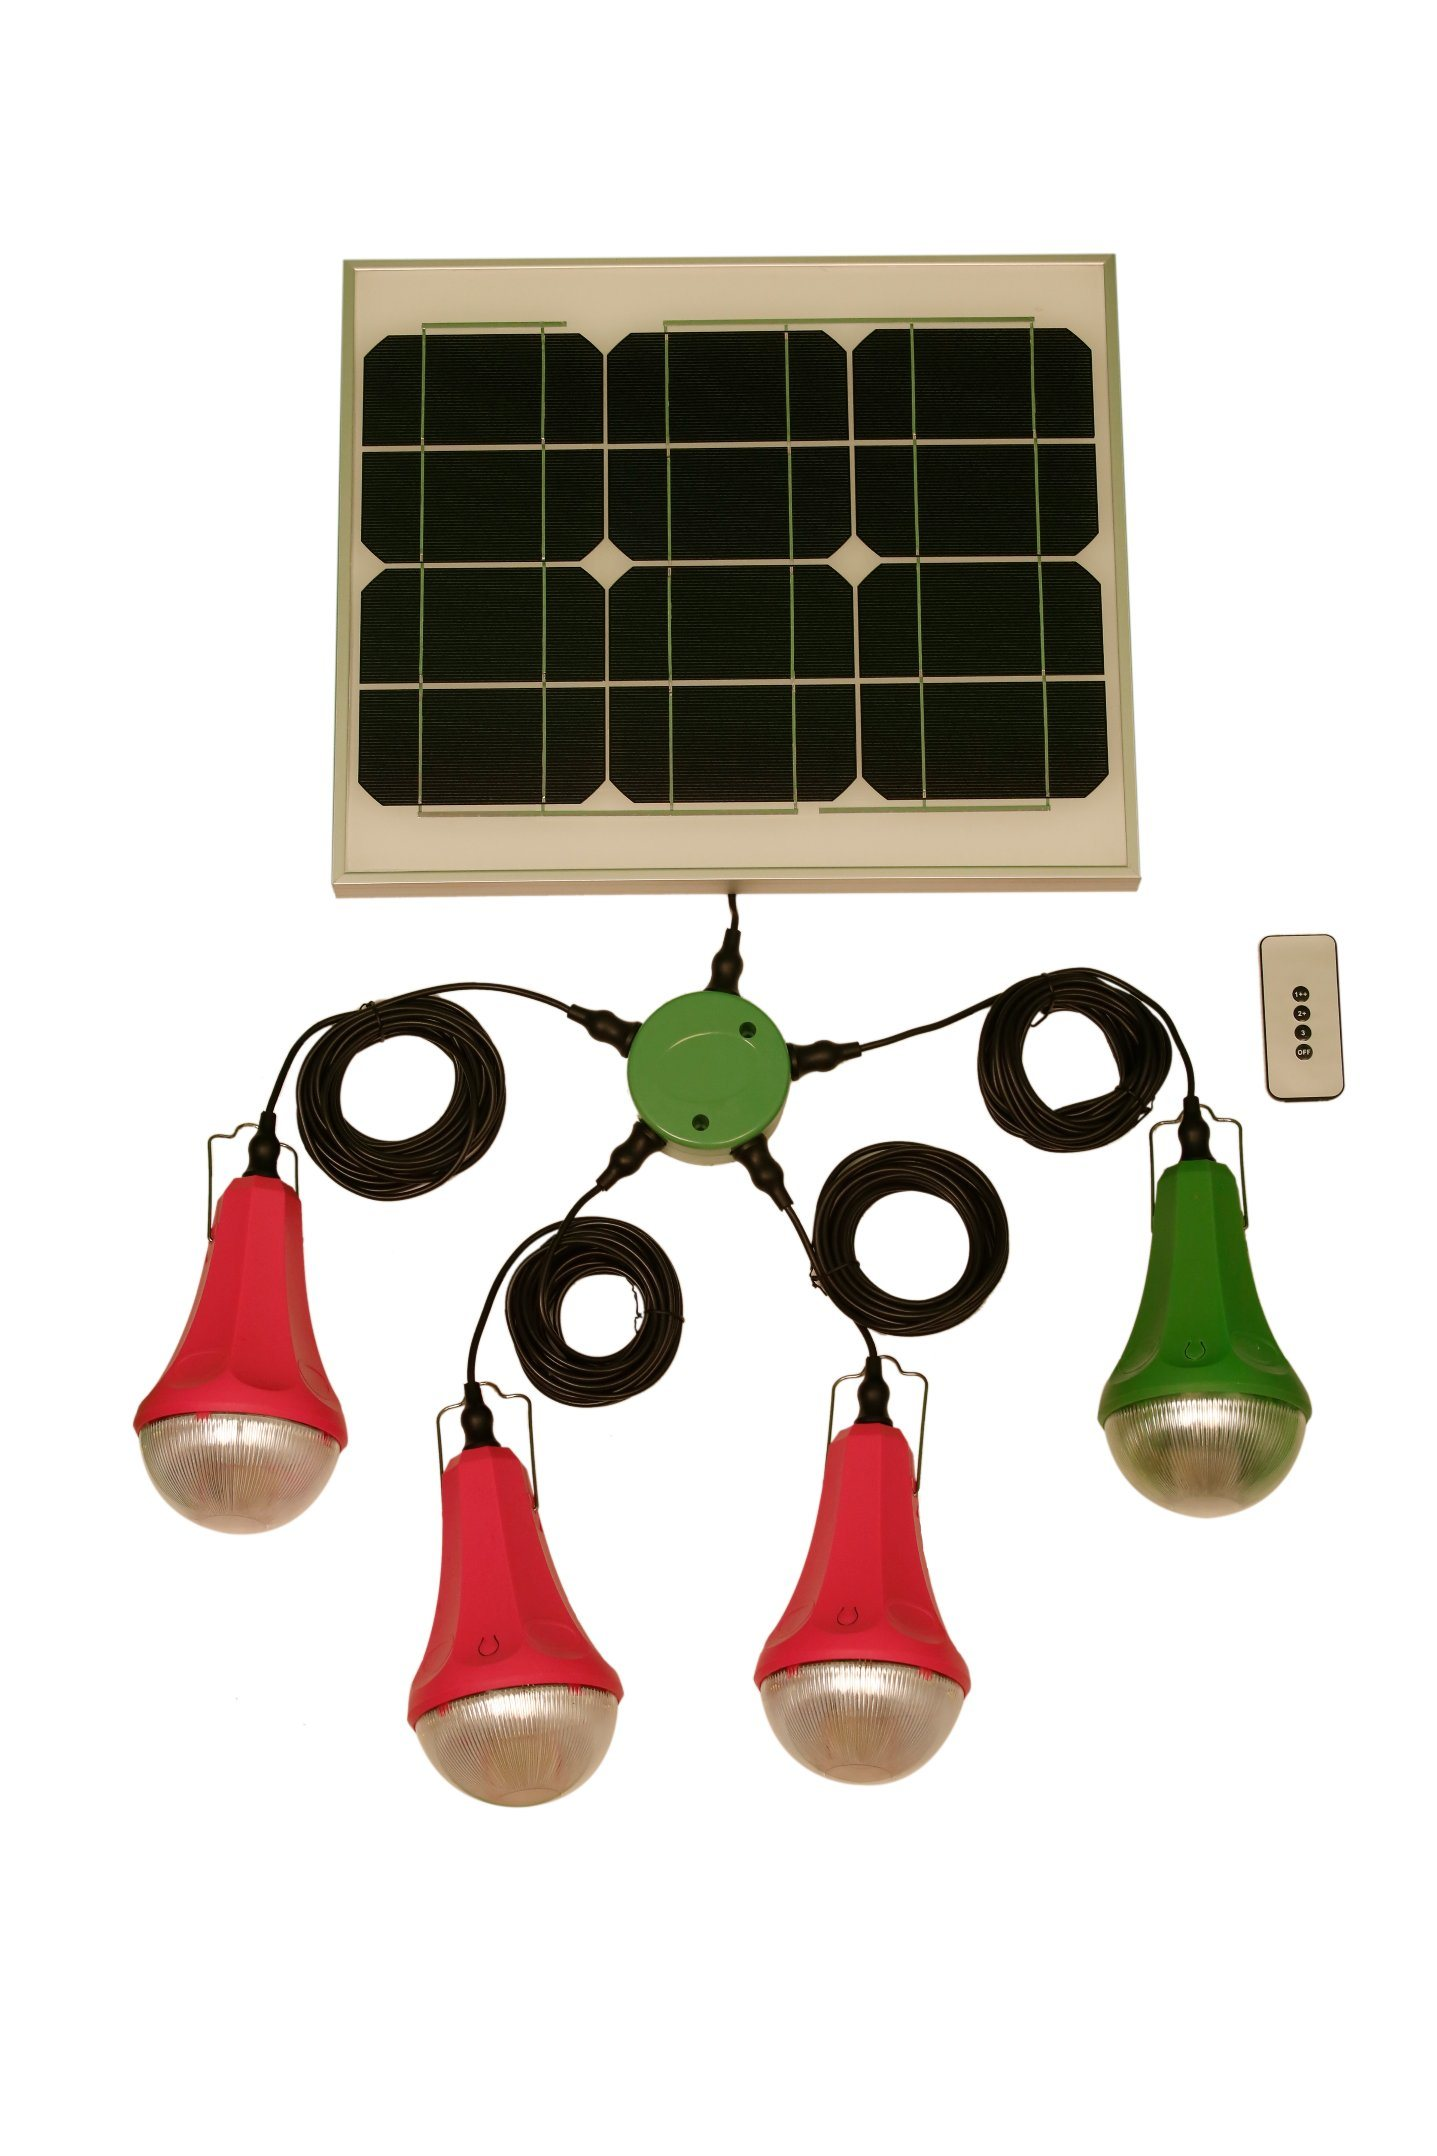 Hot 12V Low Cost Home Portable Solar Panel Kit Solar Lighting Kit with 4 Bulbs